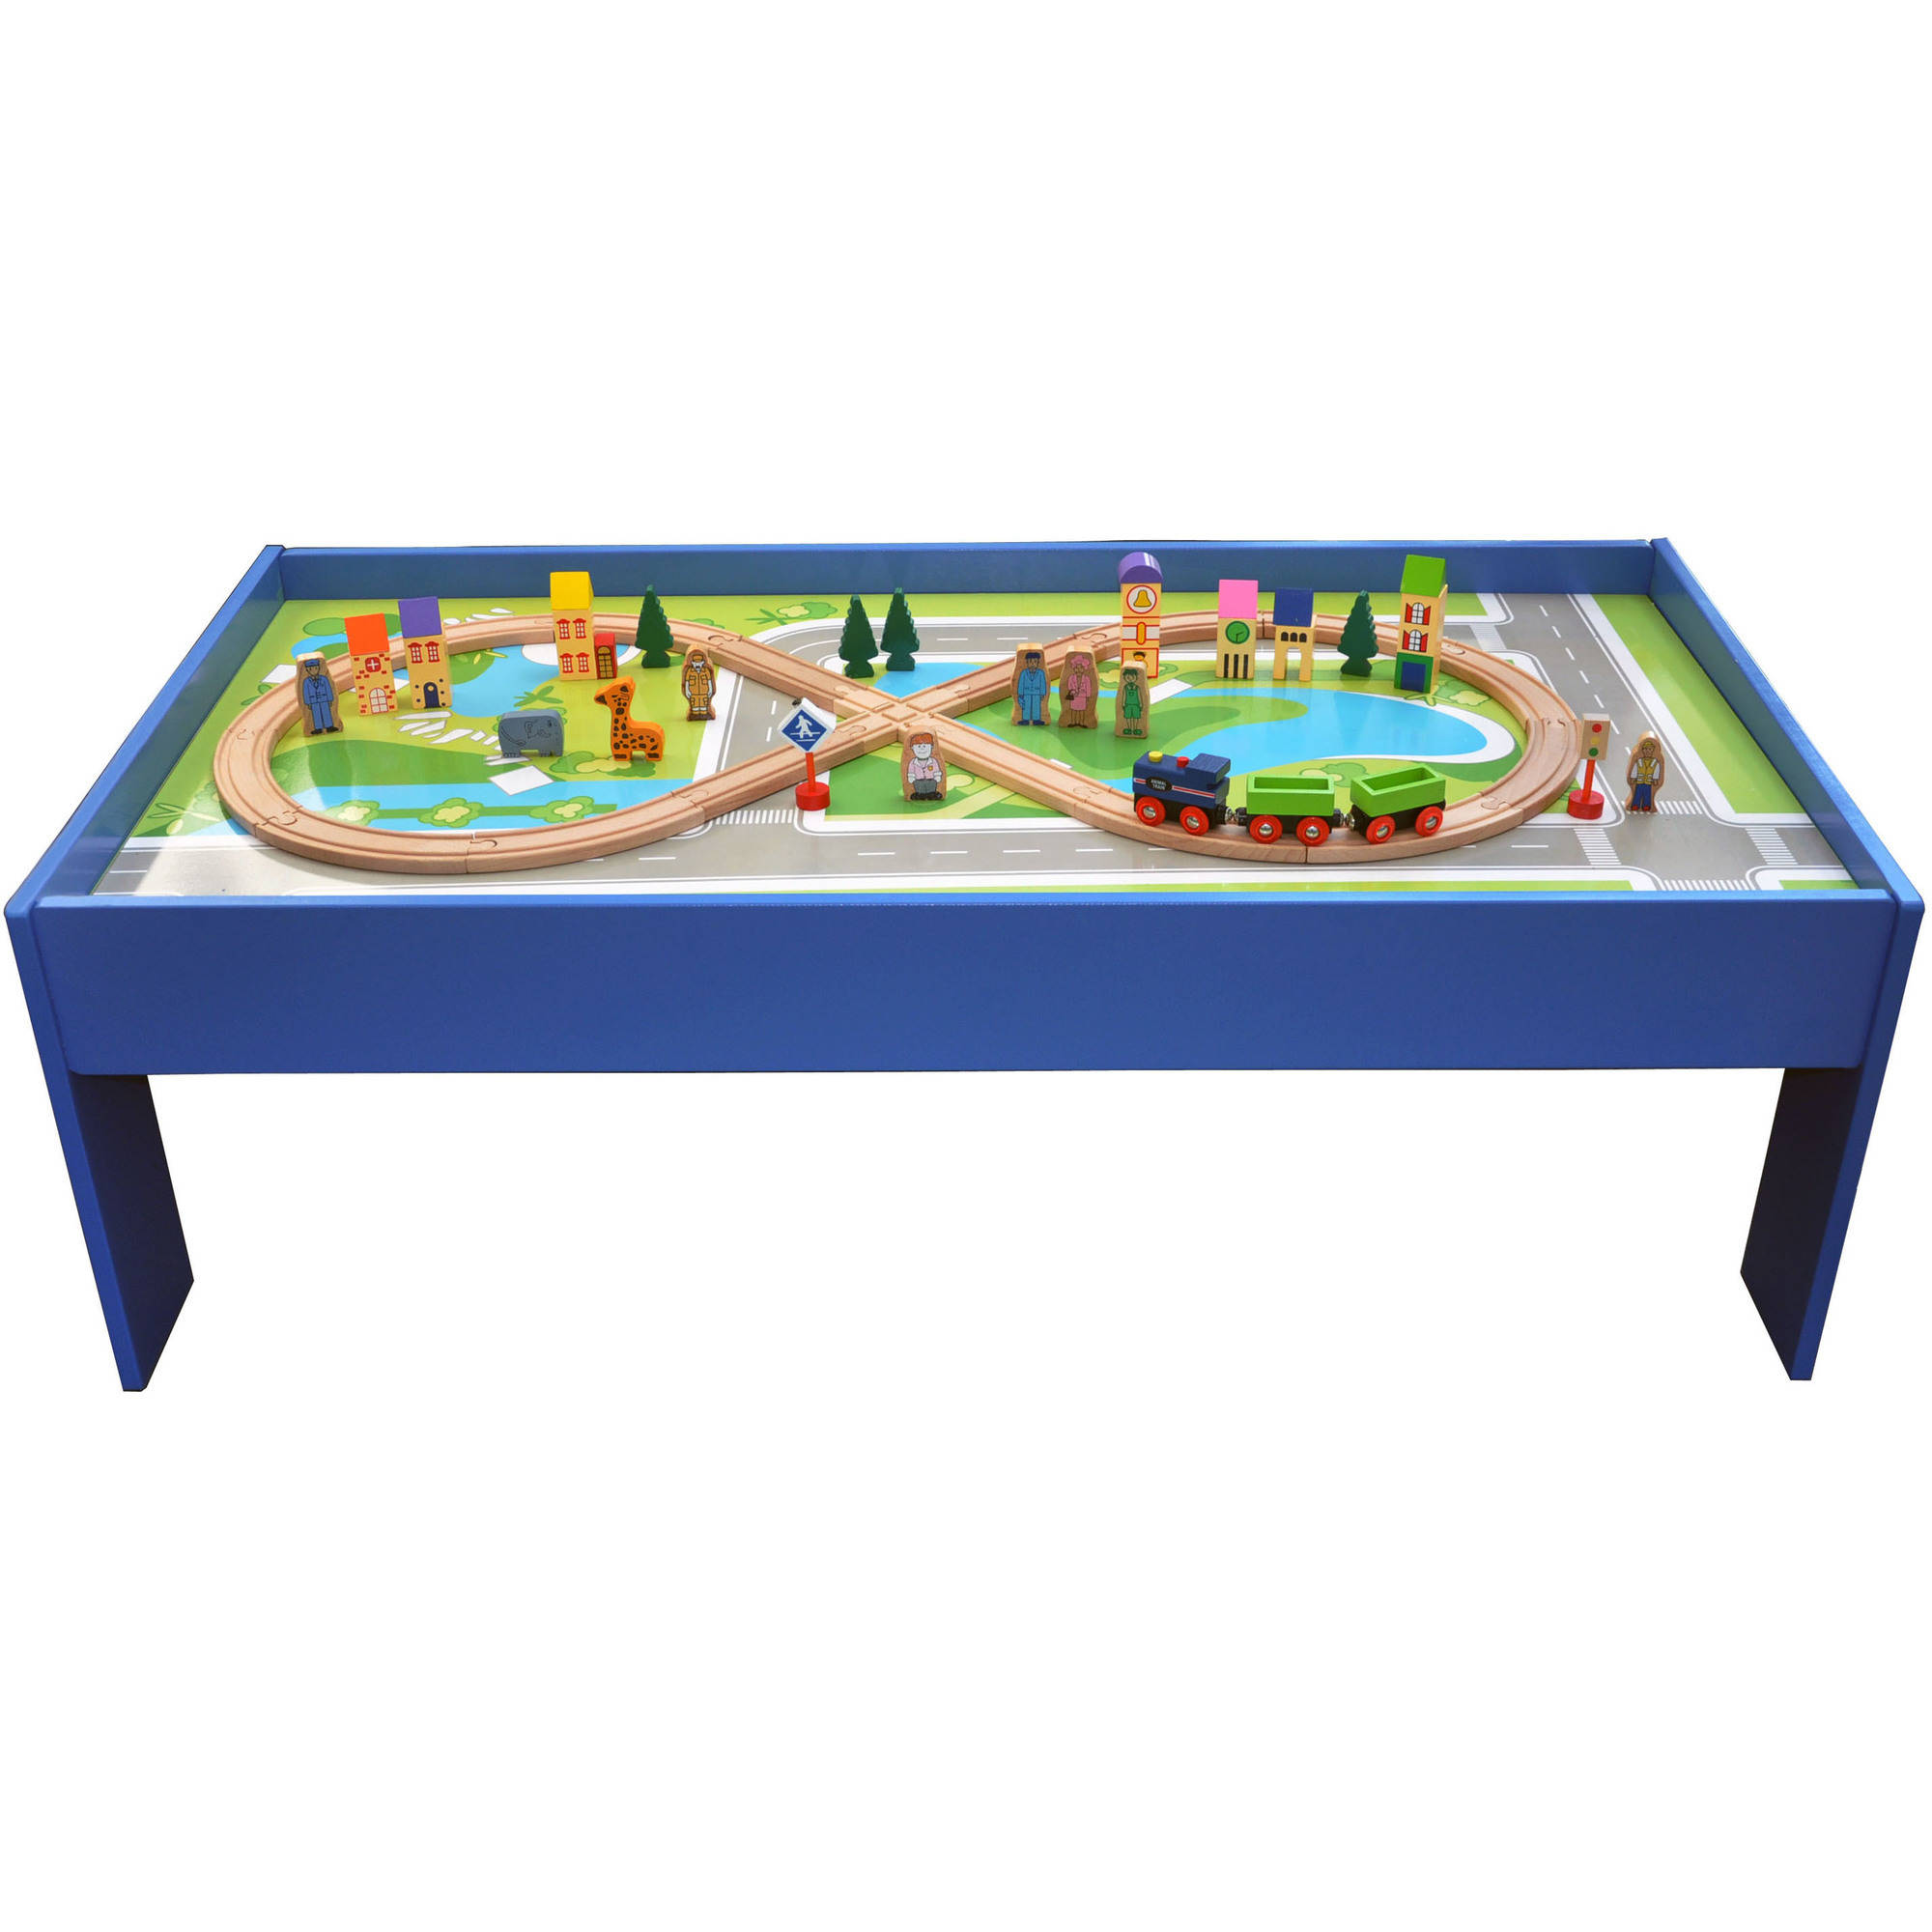 51-Piece Wooden Train Set with Table by